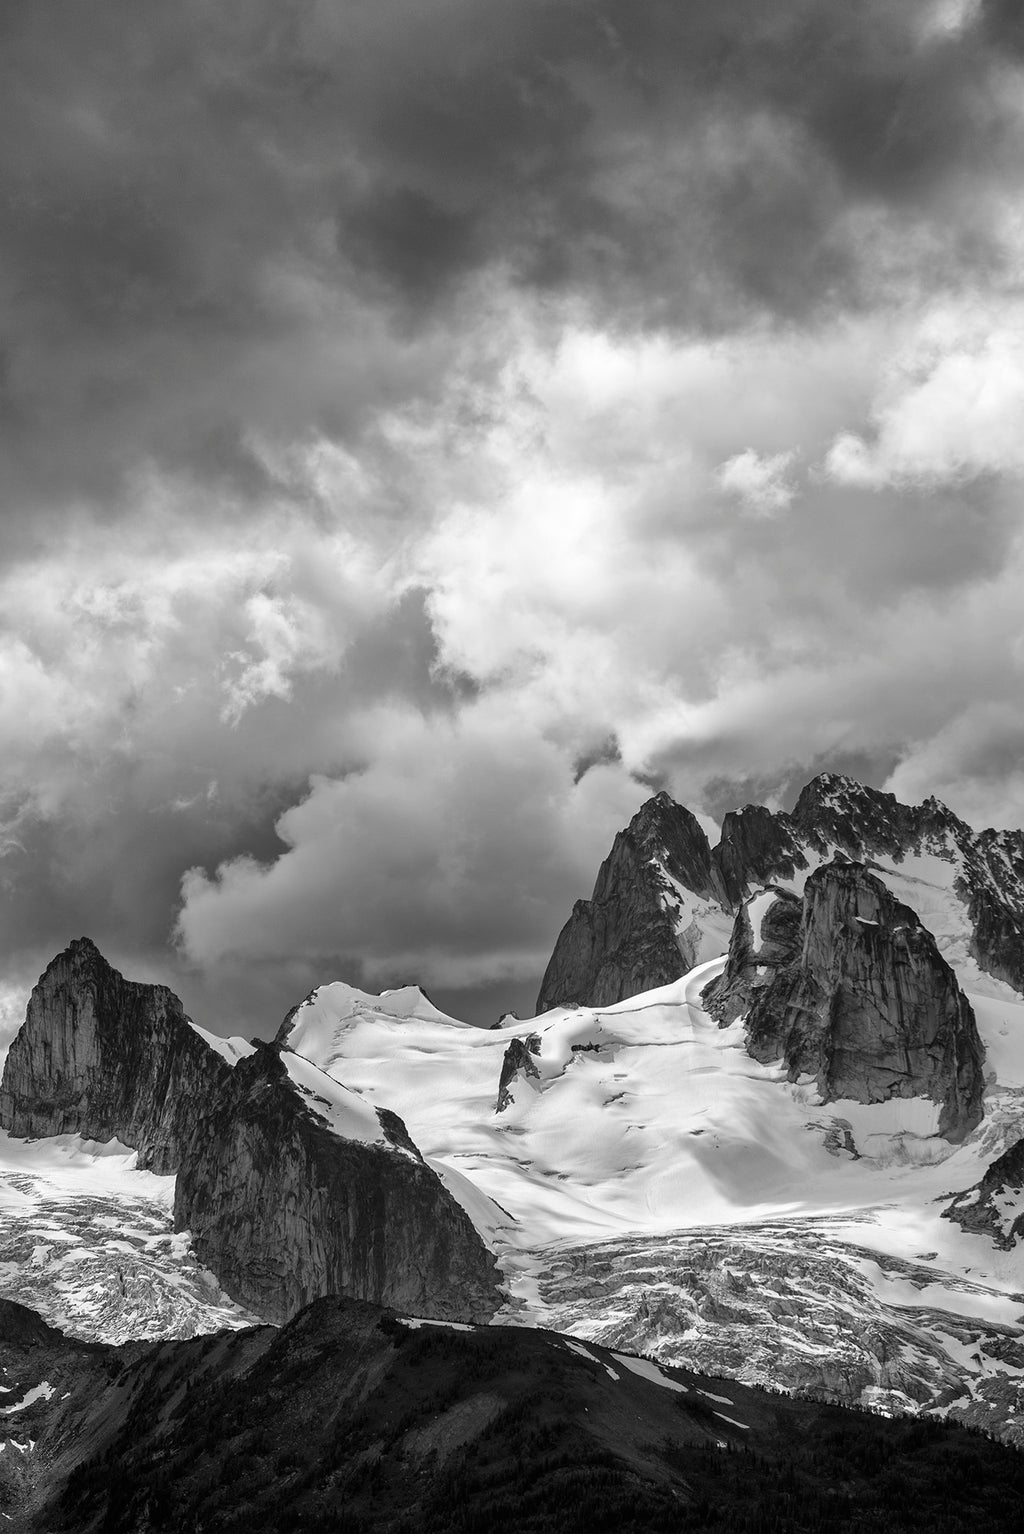 Bugaboo Storm Clouds 24x36 inch Canvas Print